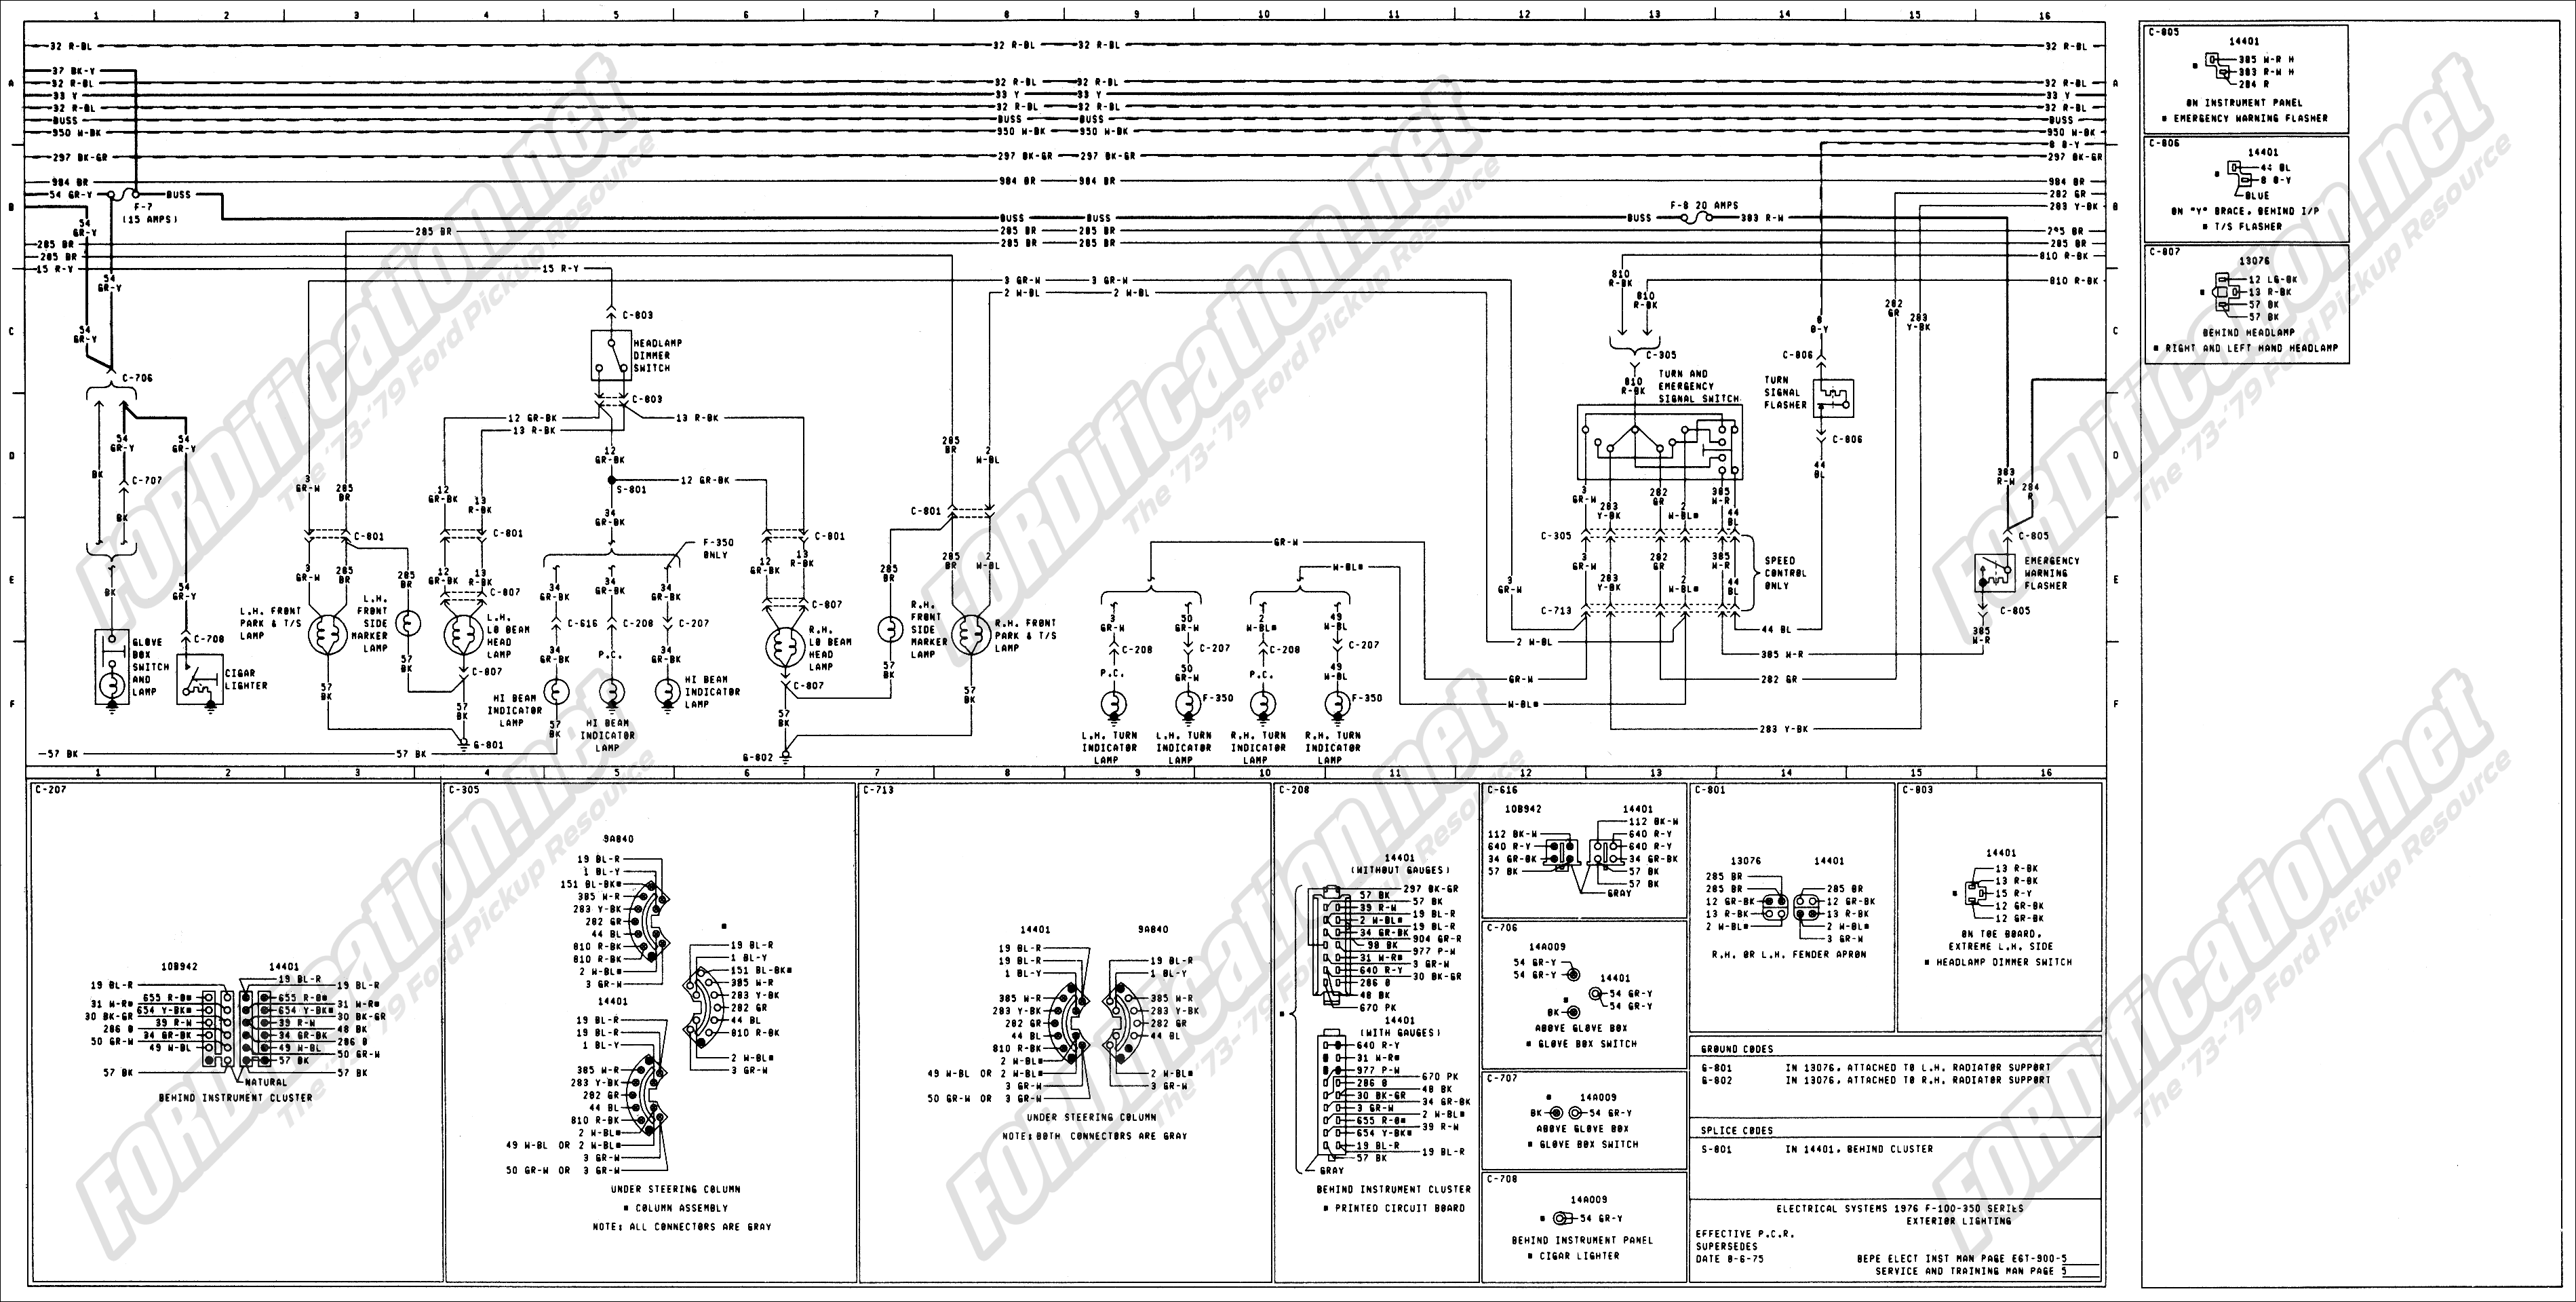 77 Ford Ignition Wiring Diagram Electronic Diagrams 2006 1973 1979 Truck Schematics Fordification Net 1978 Bronco